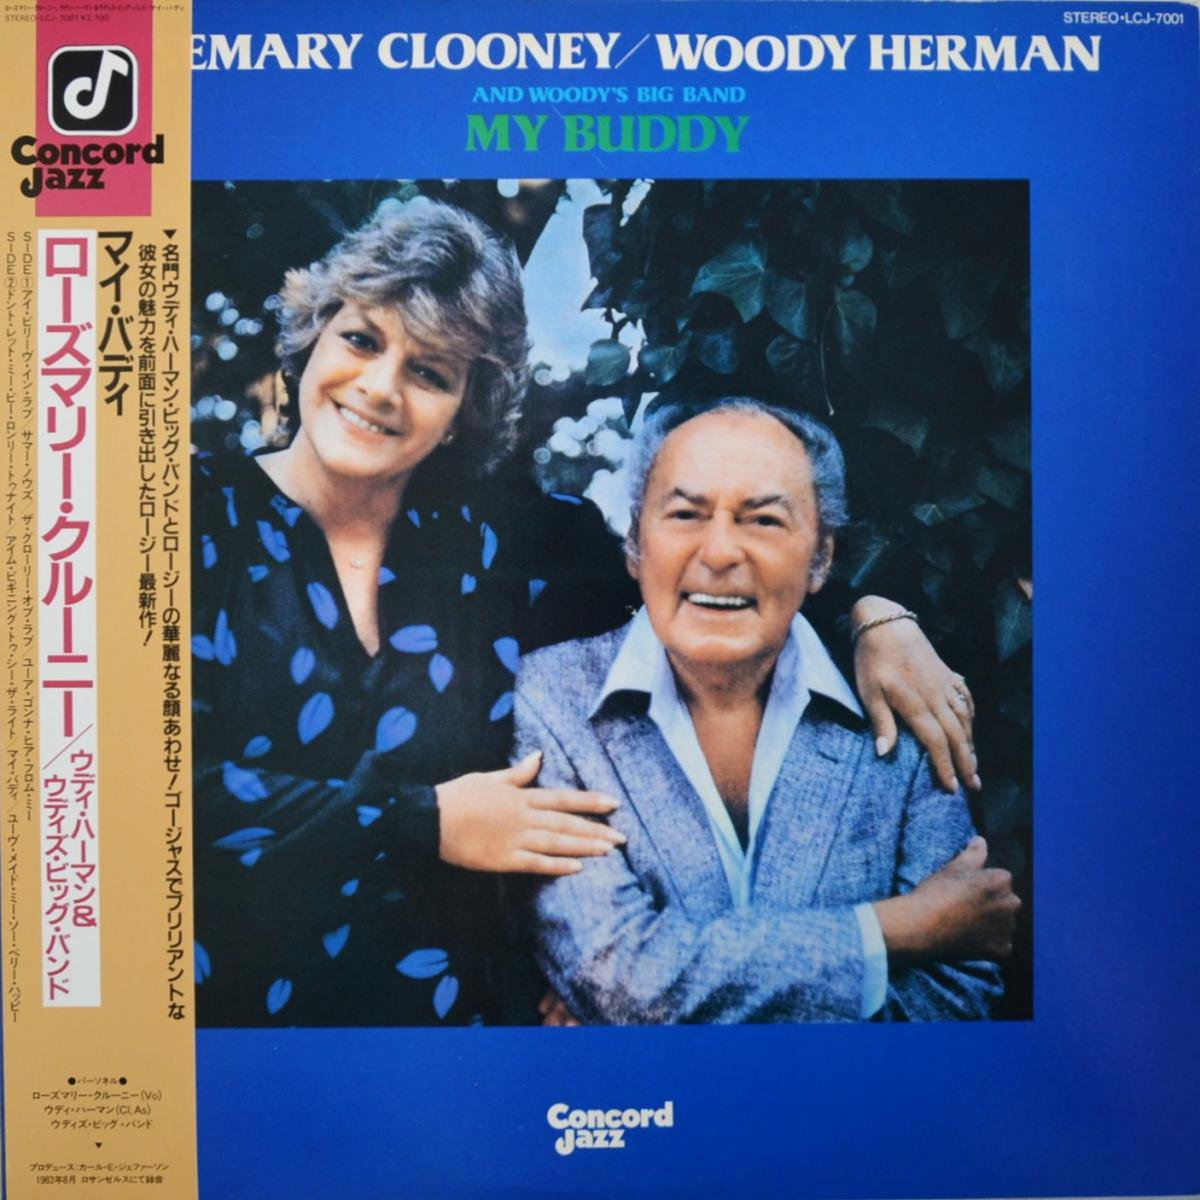 ROSEMARY CLOONEY,WOODY HERMAN & WOODY'S BIG BAND / MY BUDDY (LP)